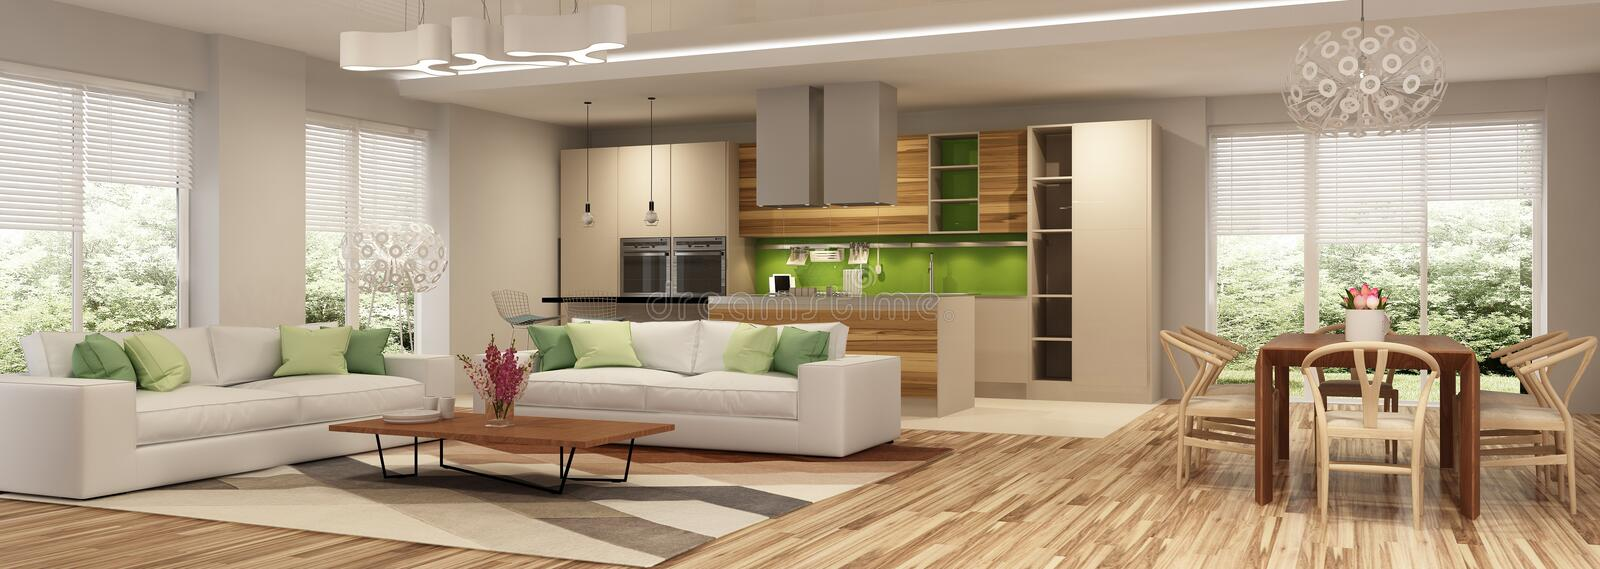 Modern house interior of living room and a kitchen in beige and green colors. royalty free stock images